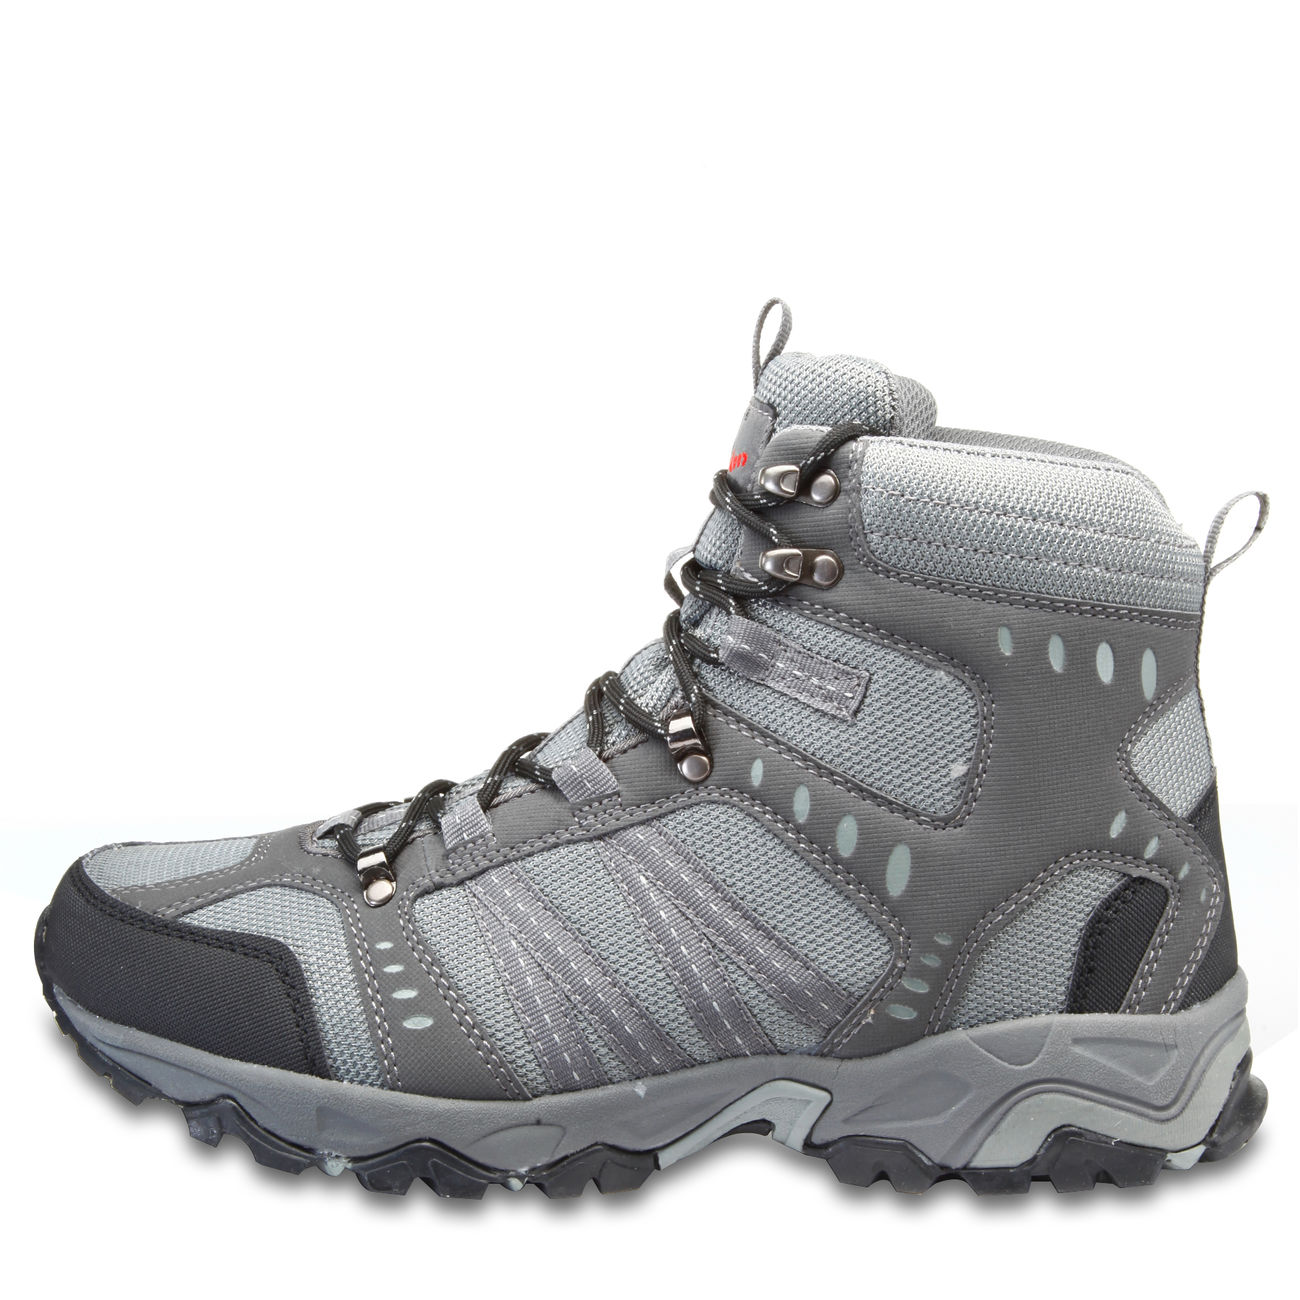 Fox Outdoor Trekkingschuh Mountain High grau 0